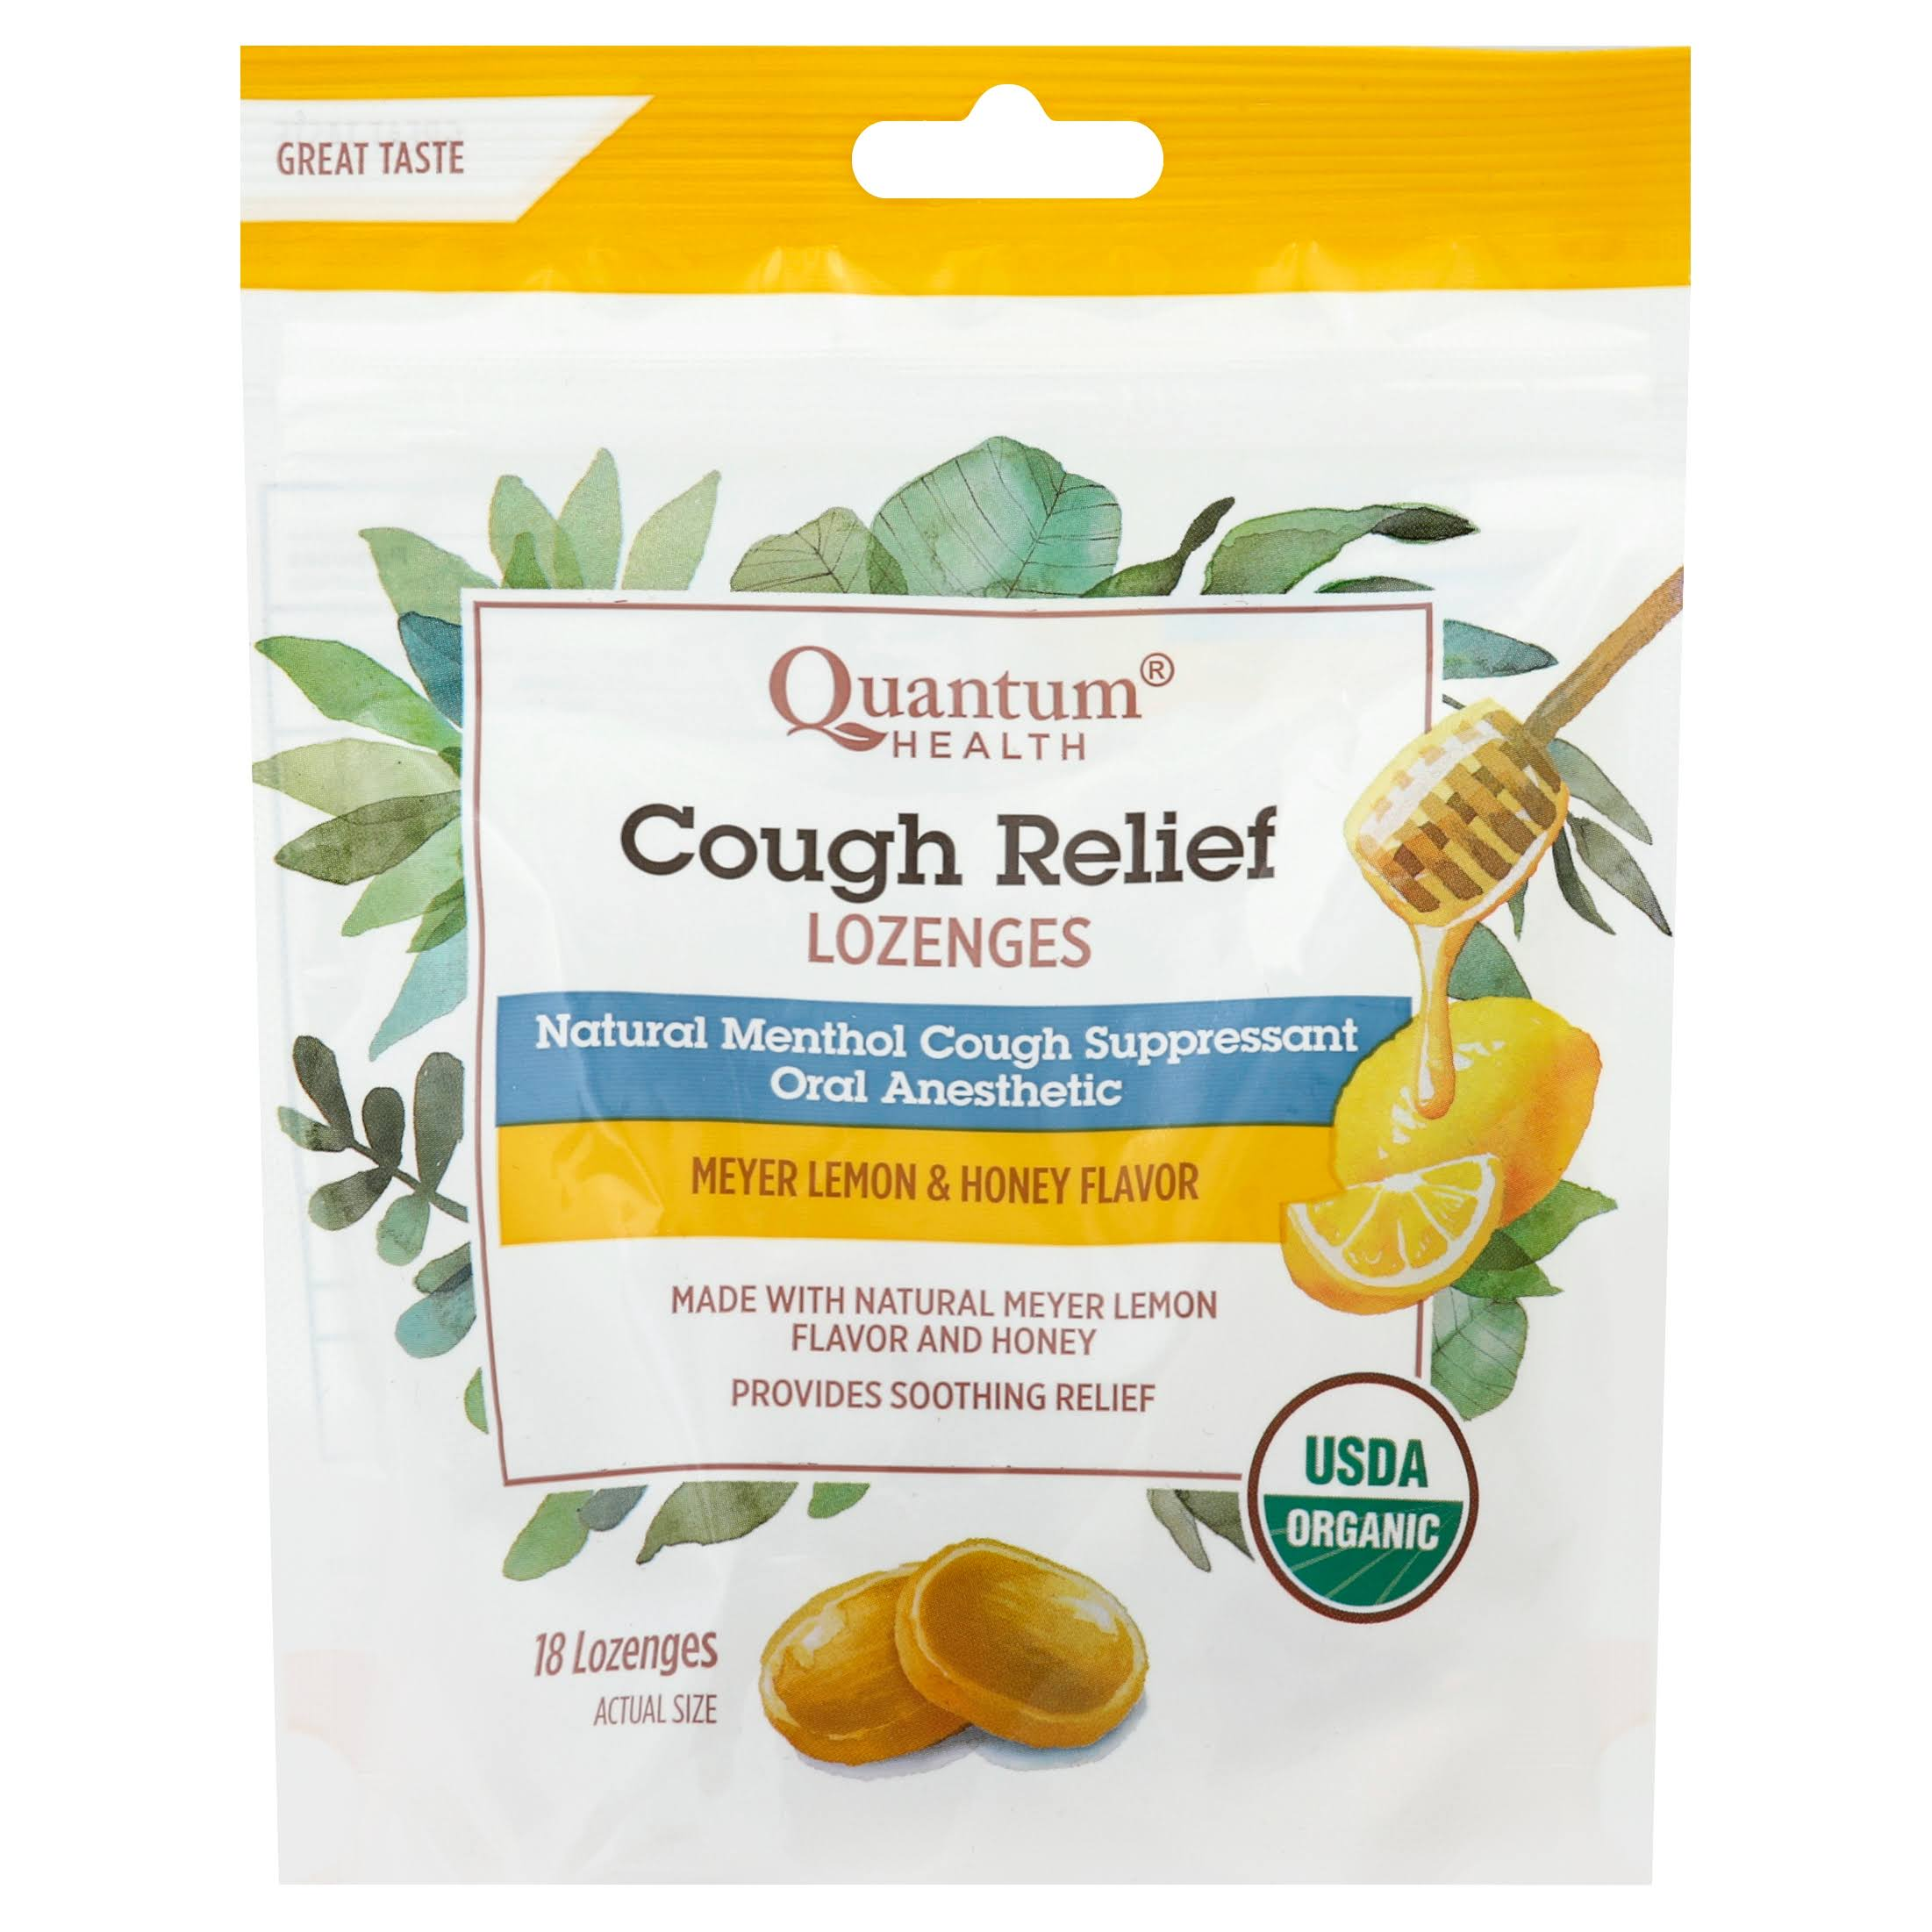 Quantum Cough Relief Meyer Lemon & Honey Flavor Lozenge - 18ct